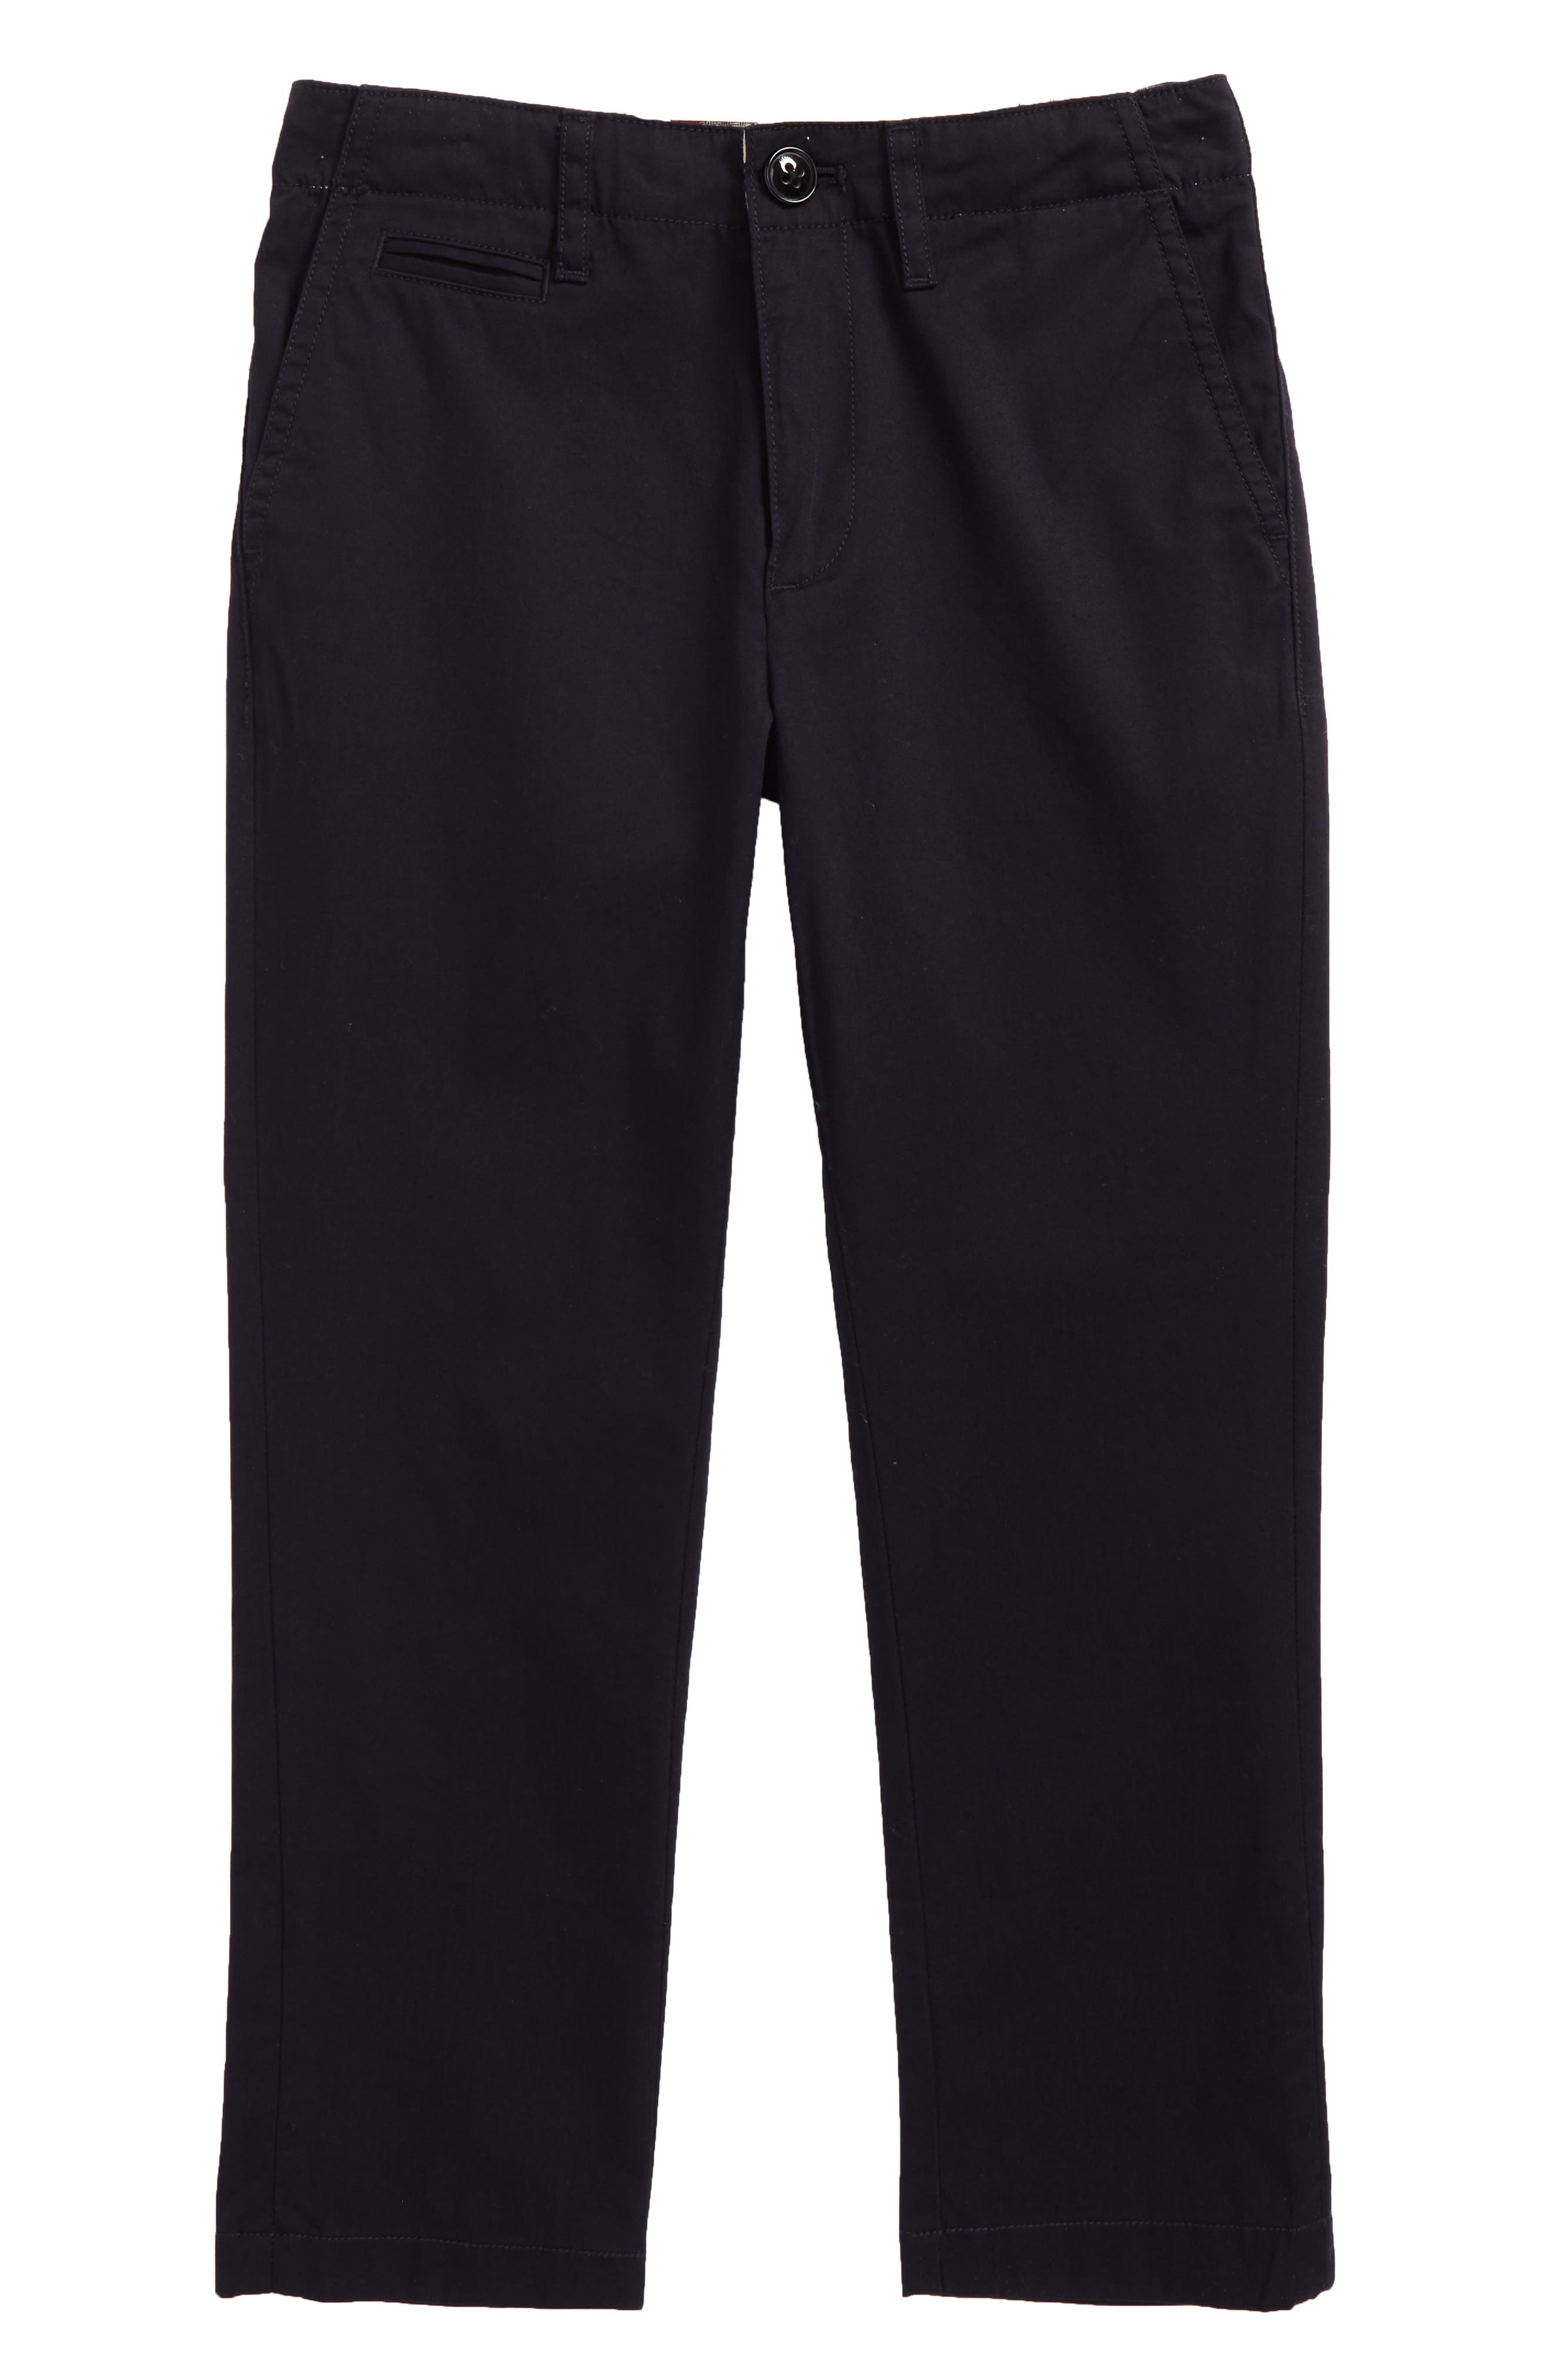 BURBERRY Teo Straight Leg Pants, Main, color, INK